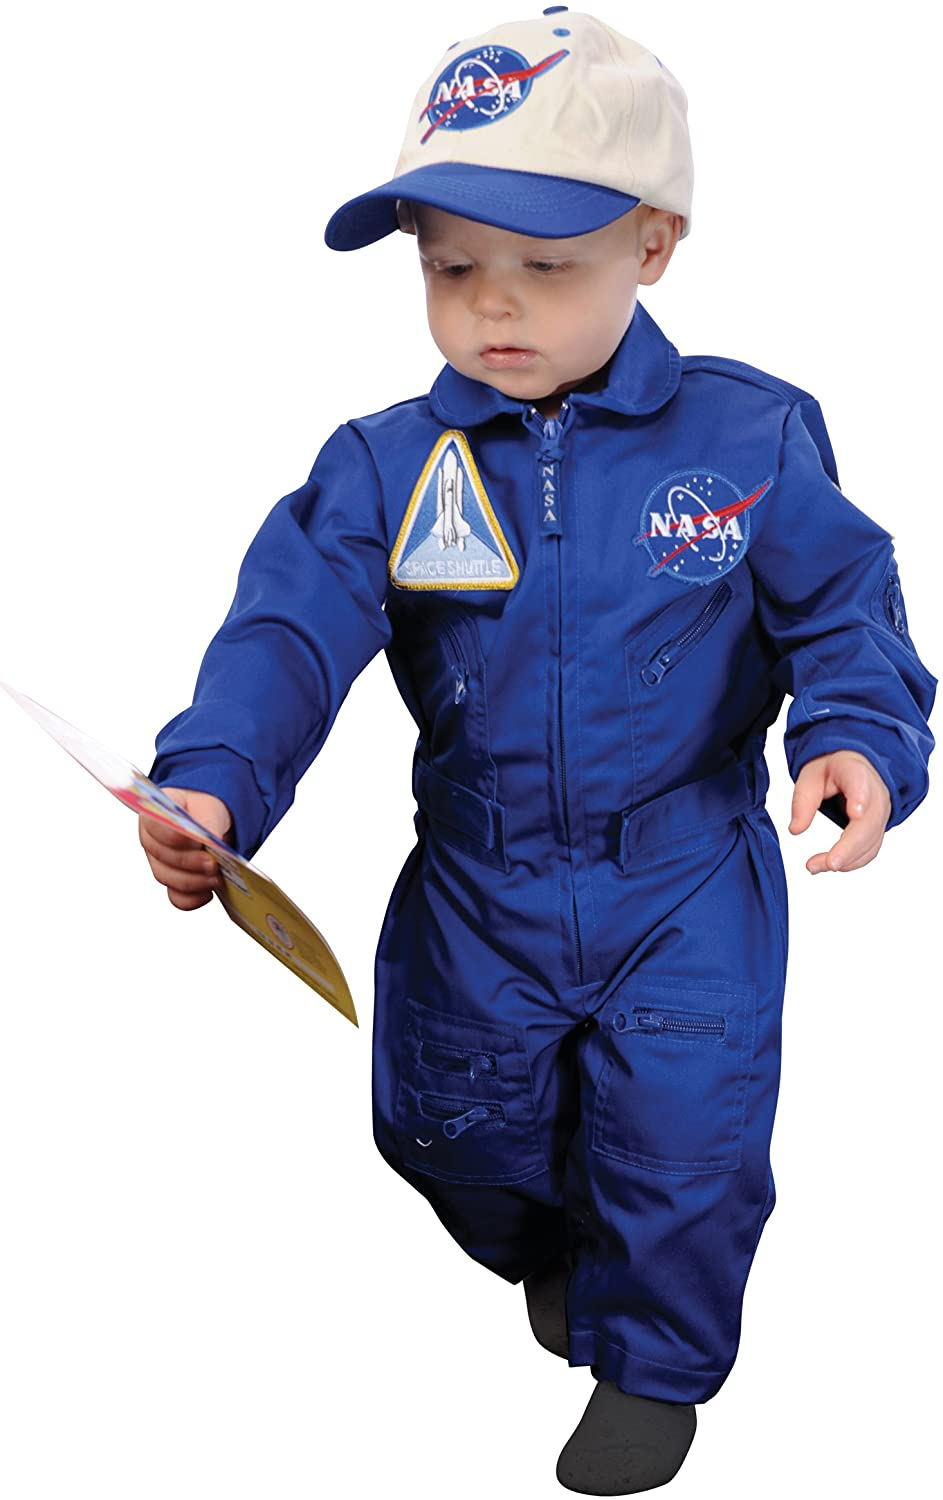 Aeromax Jr. NASA Flight Suit, Blue, with Embroidered Cap and official looking patches, size 18 months.